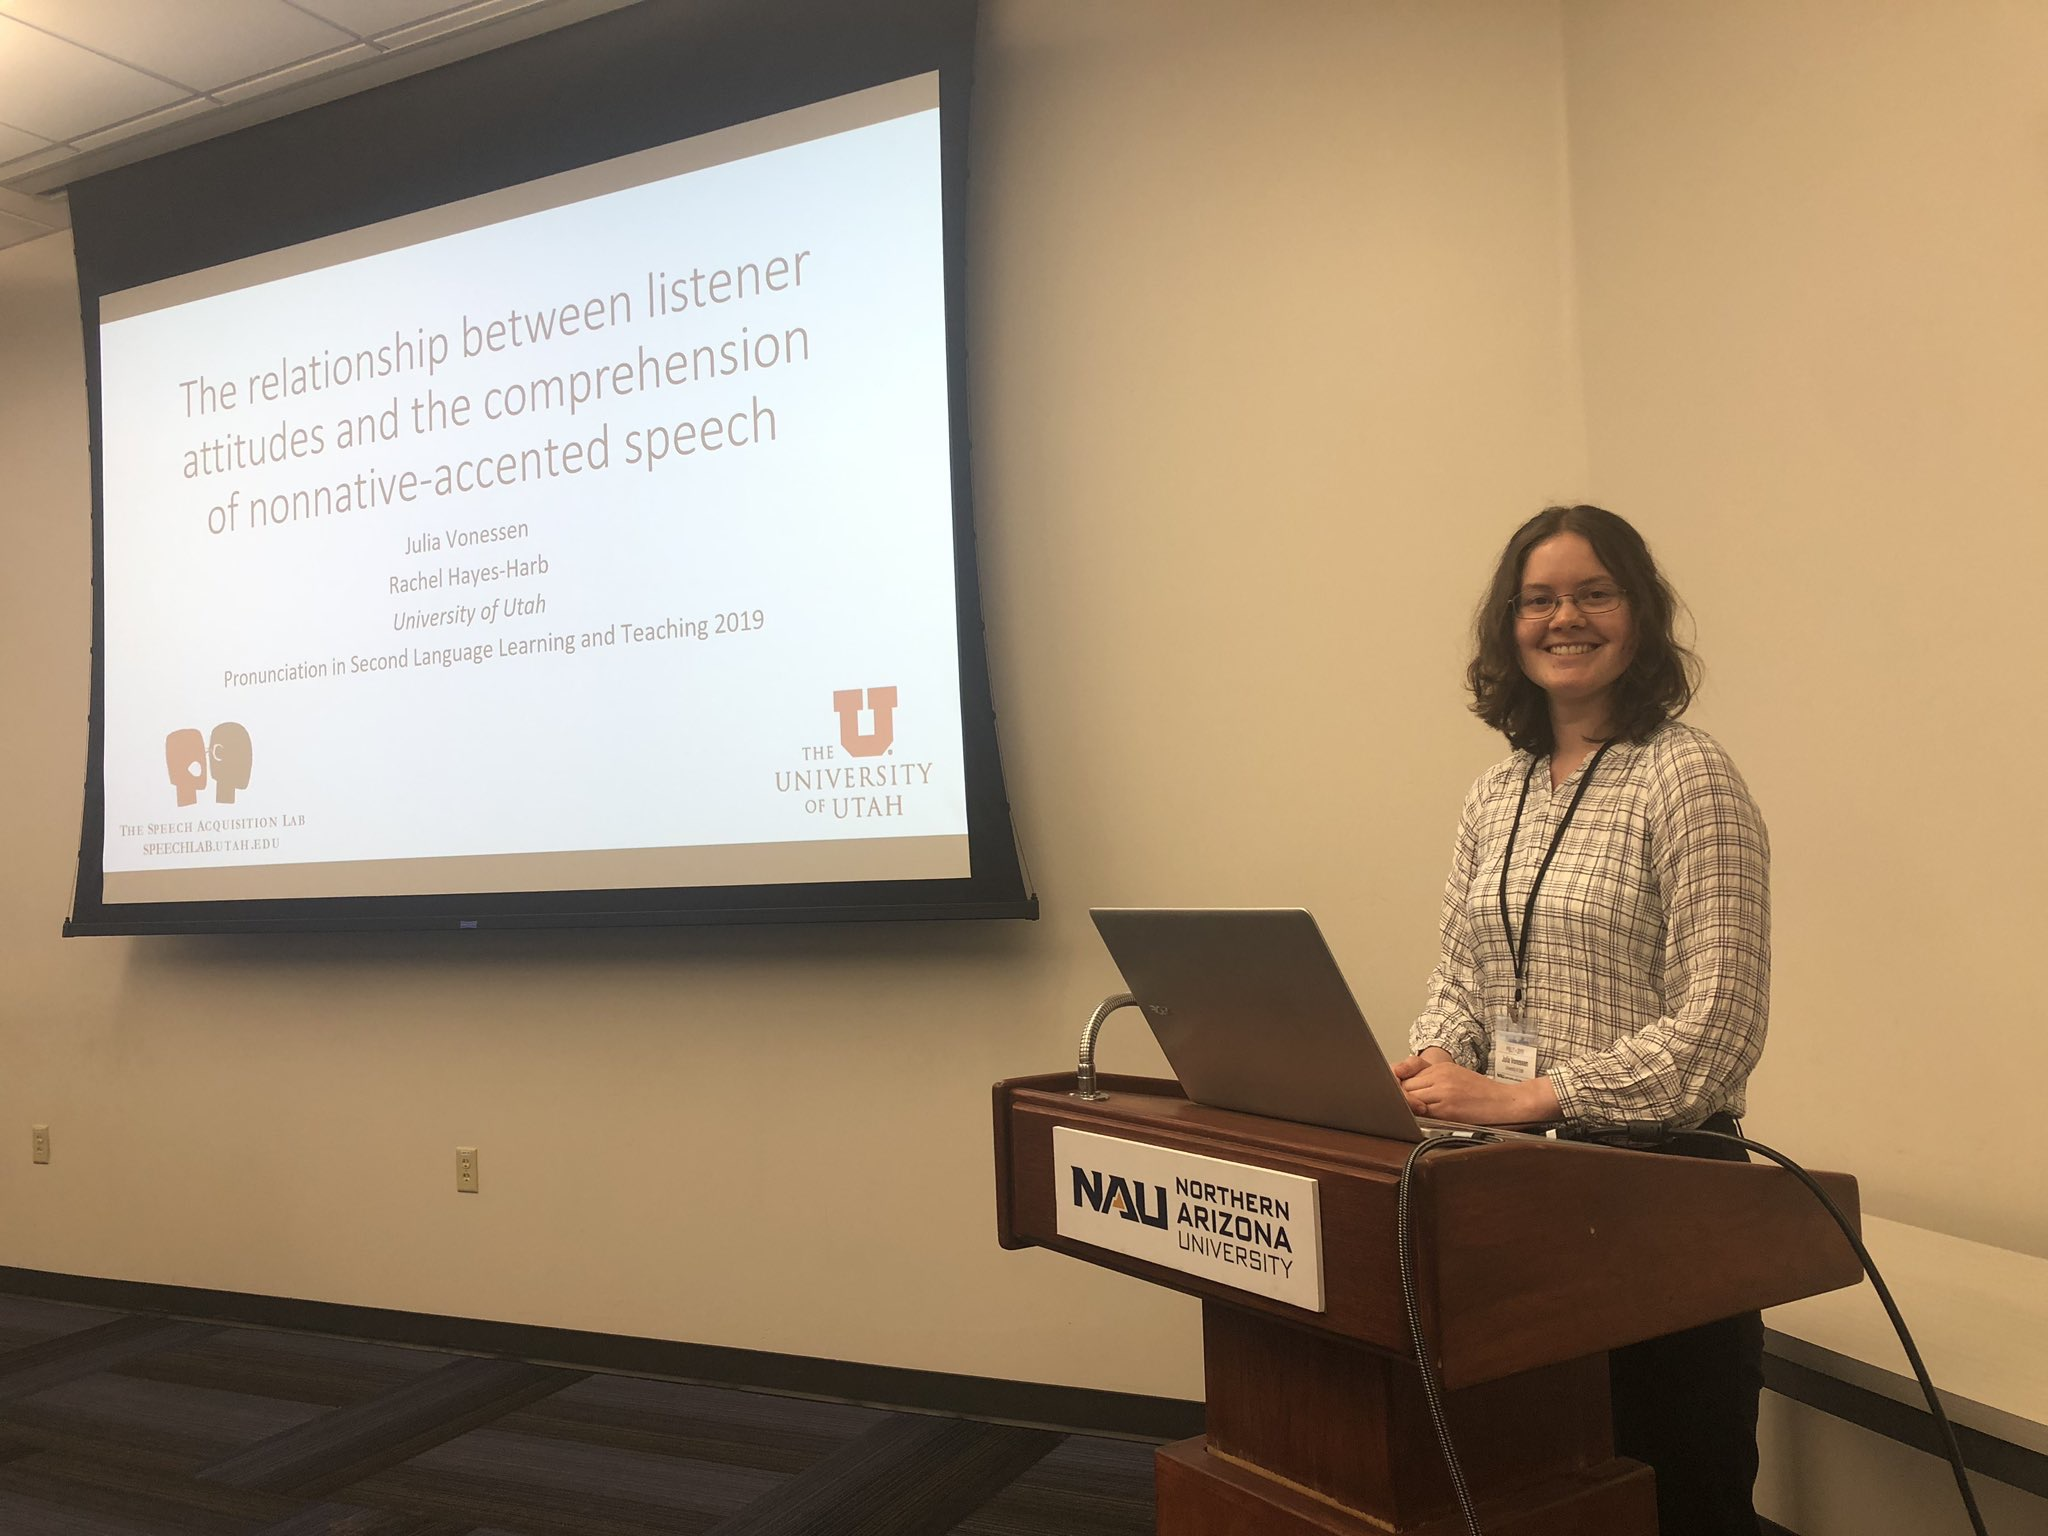 Julia Vonnessen - The relationship between listener attitudes and the comprehension of nonnative-accented speech